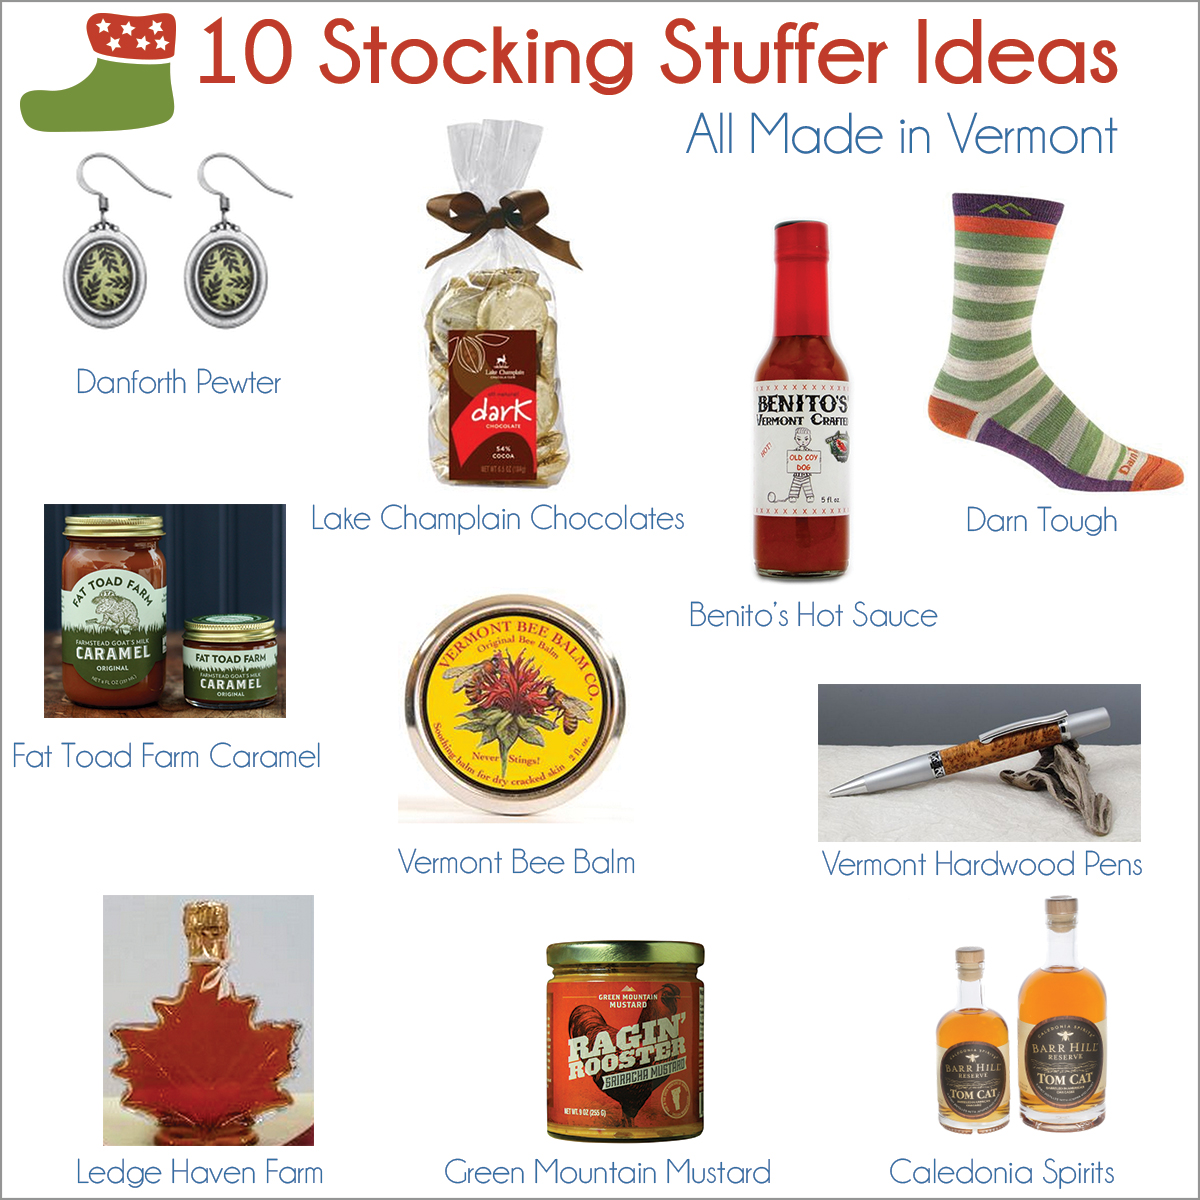 10 Vermont-Made Stocking Stuffer Ideas - Travel Like a Local: Vermont